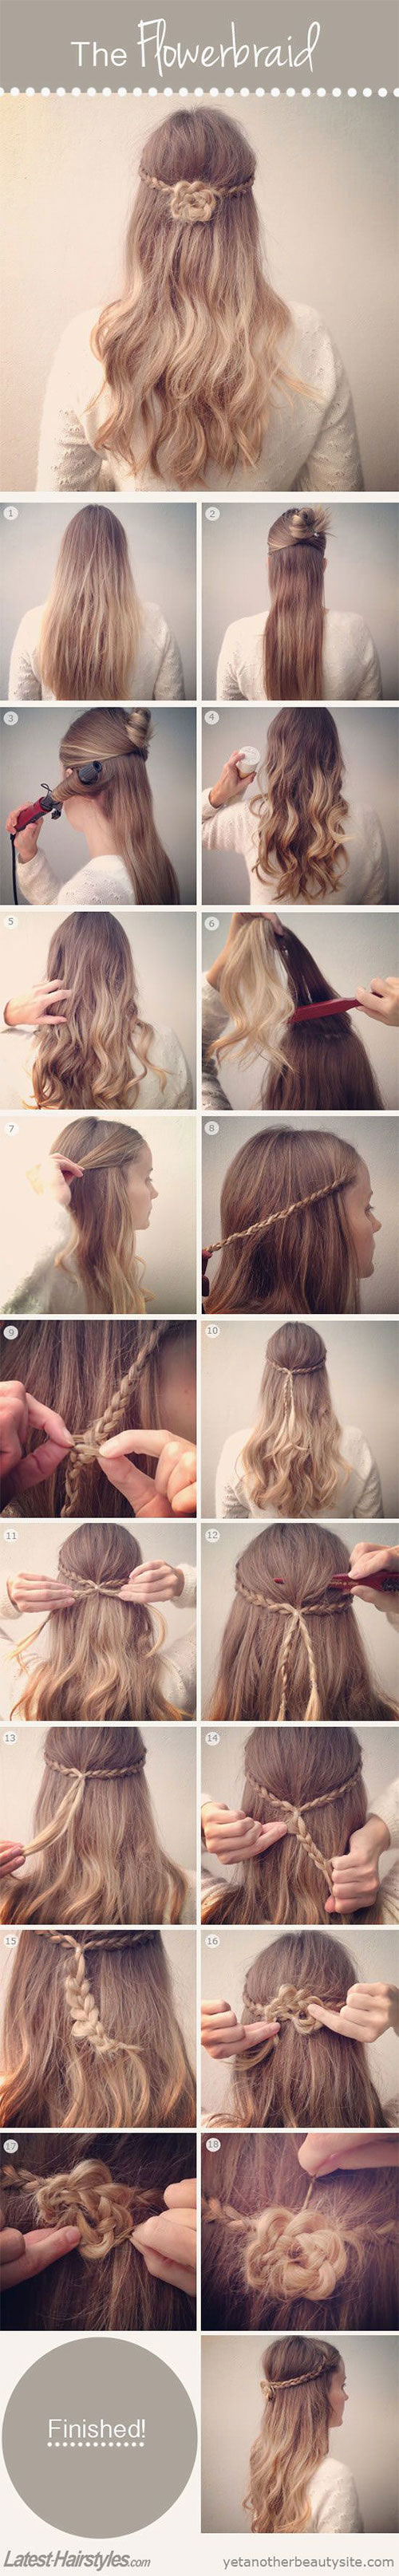 12-Step-By-Step-Spring-Hairstyle-Tutorials-For-Learners-2016-5